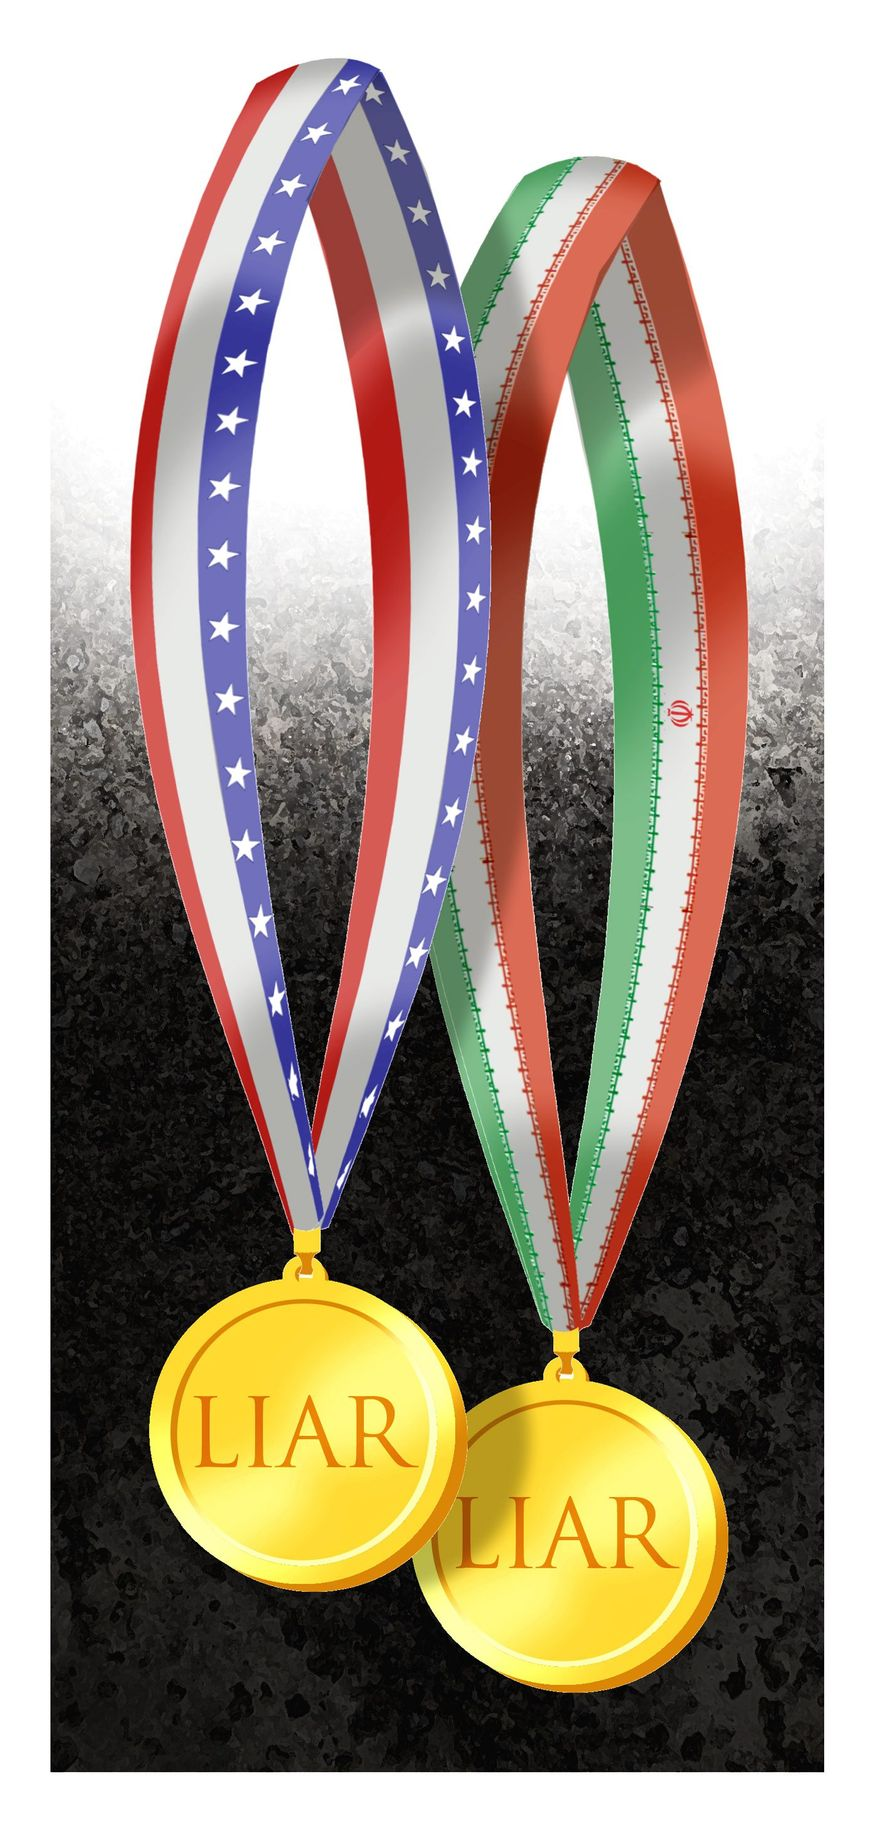 Illustration on the Kerry affair with Iran by Alexander Hunter/The Washington Times